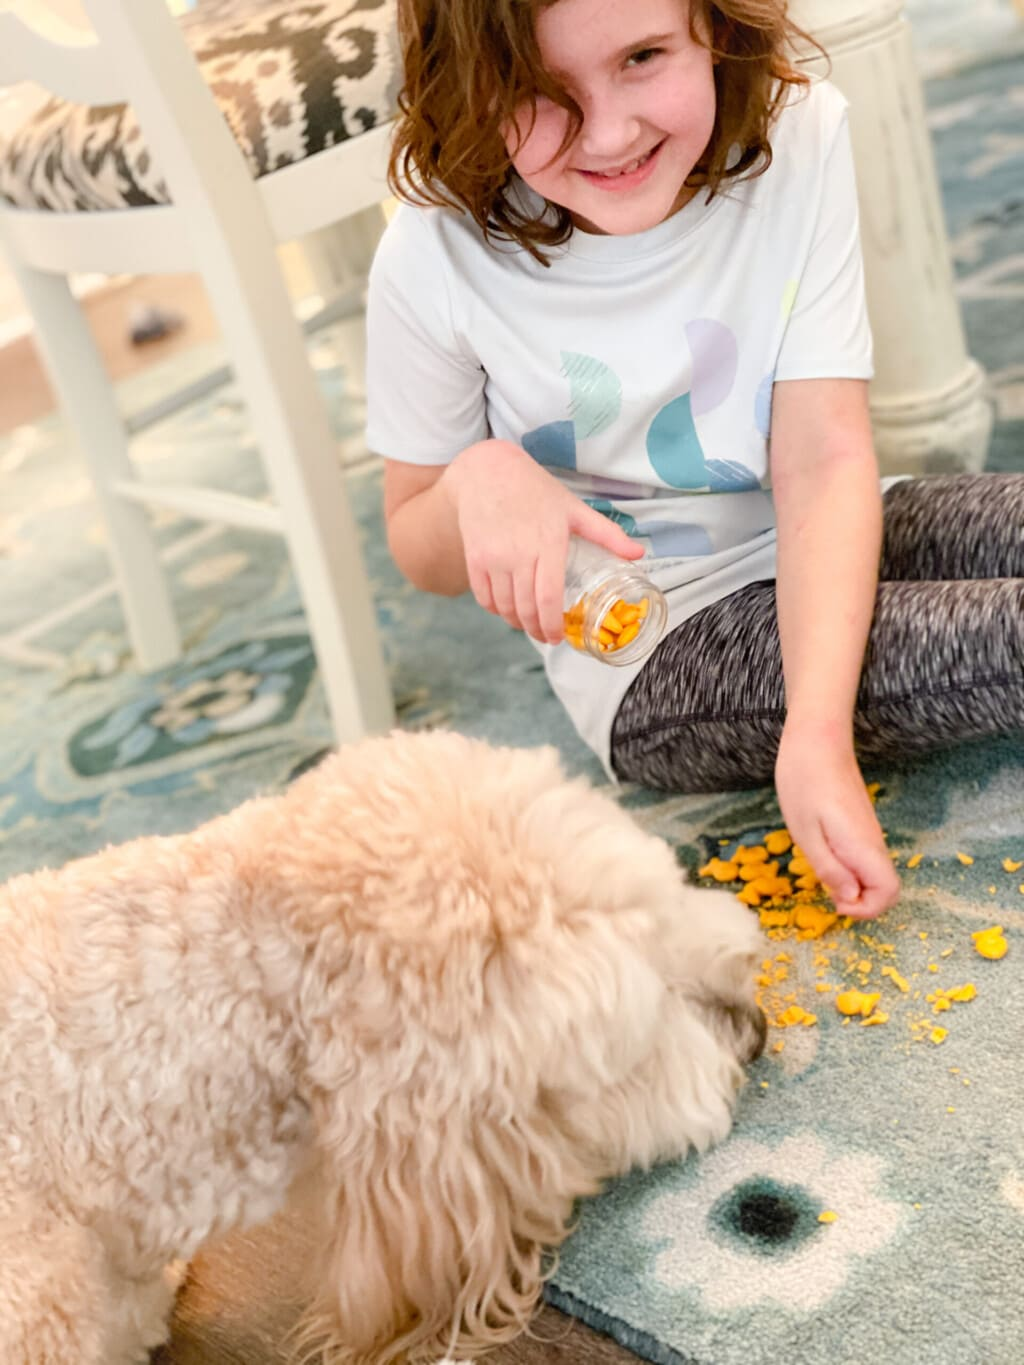 little girl dumping out goldfish crackers and white dog eating them